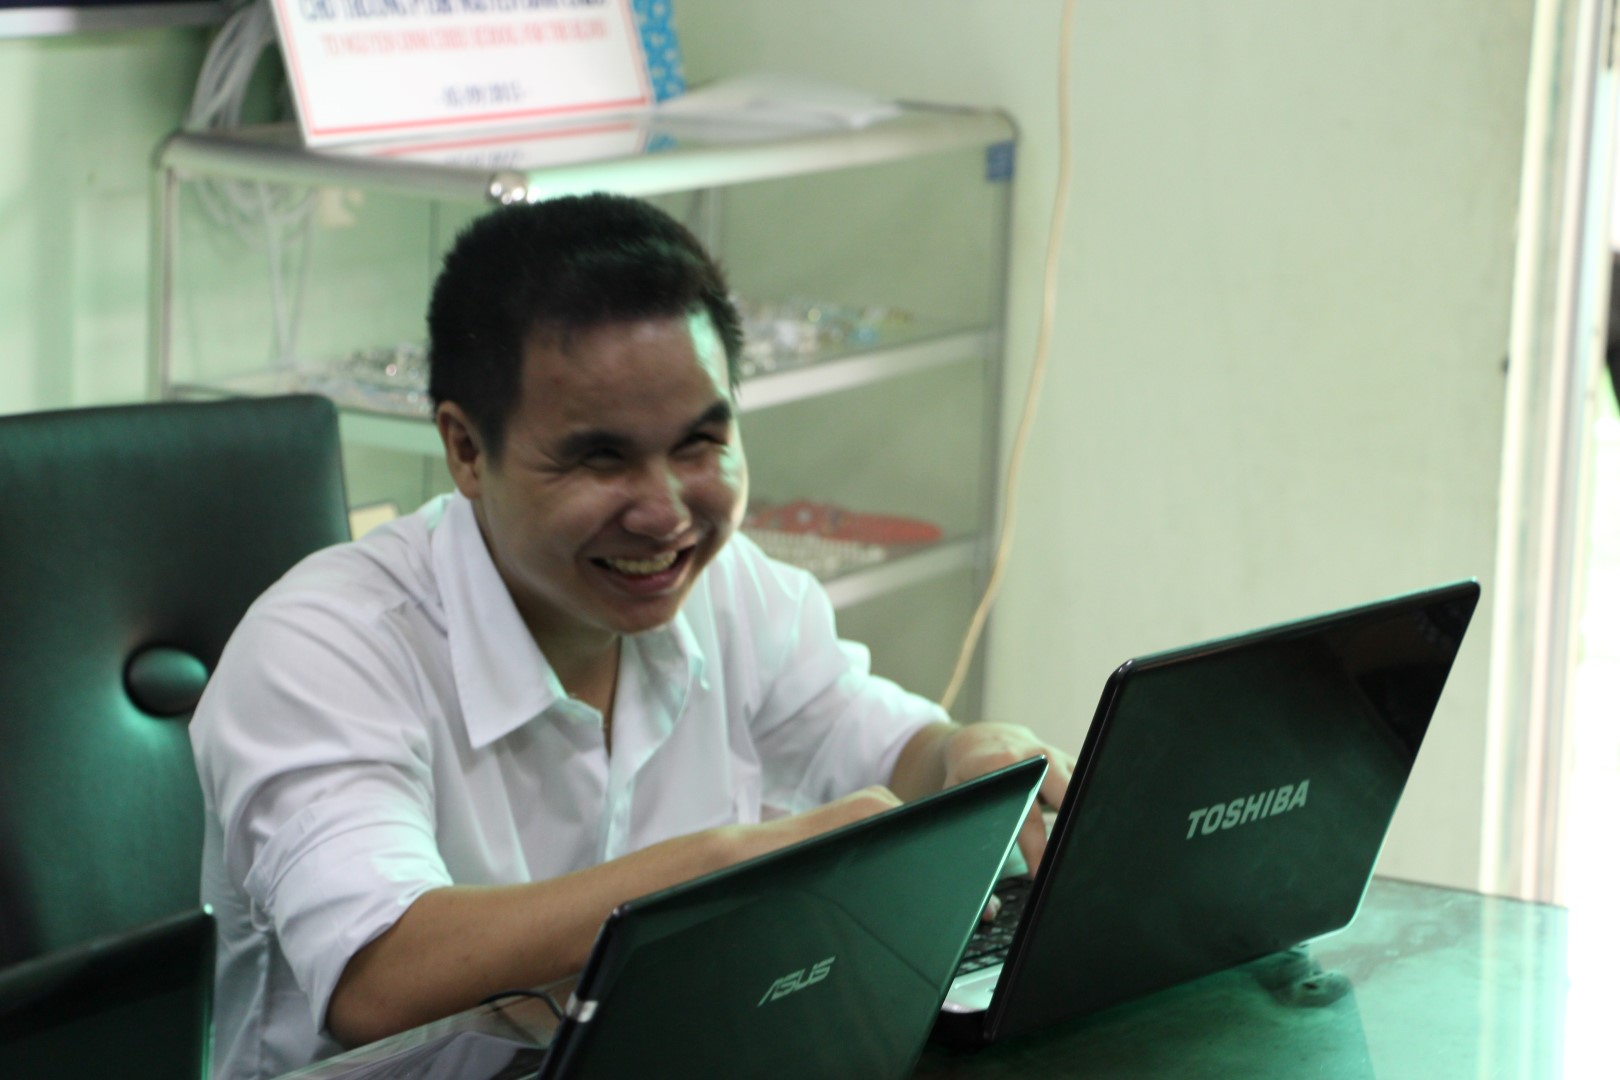 Laptops for blind children